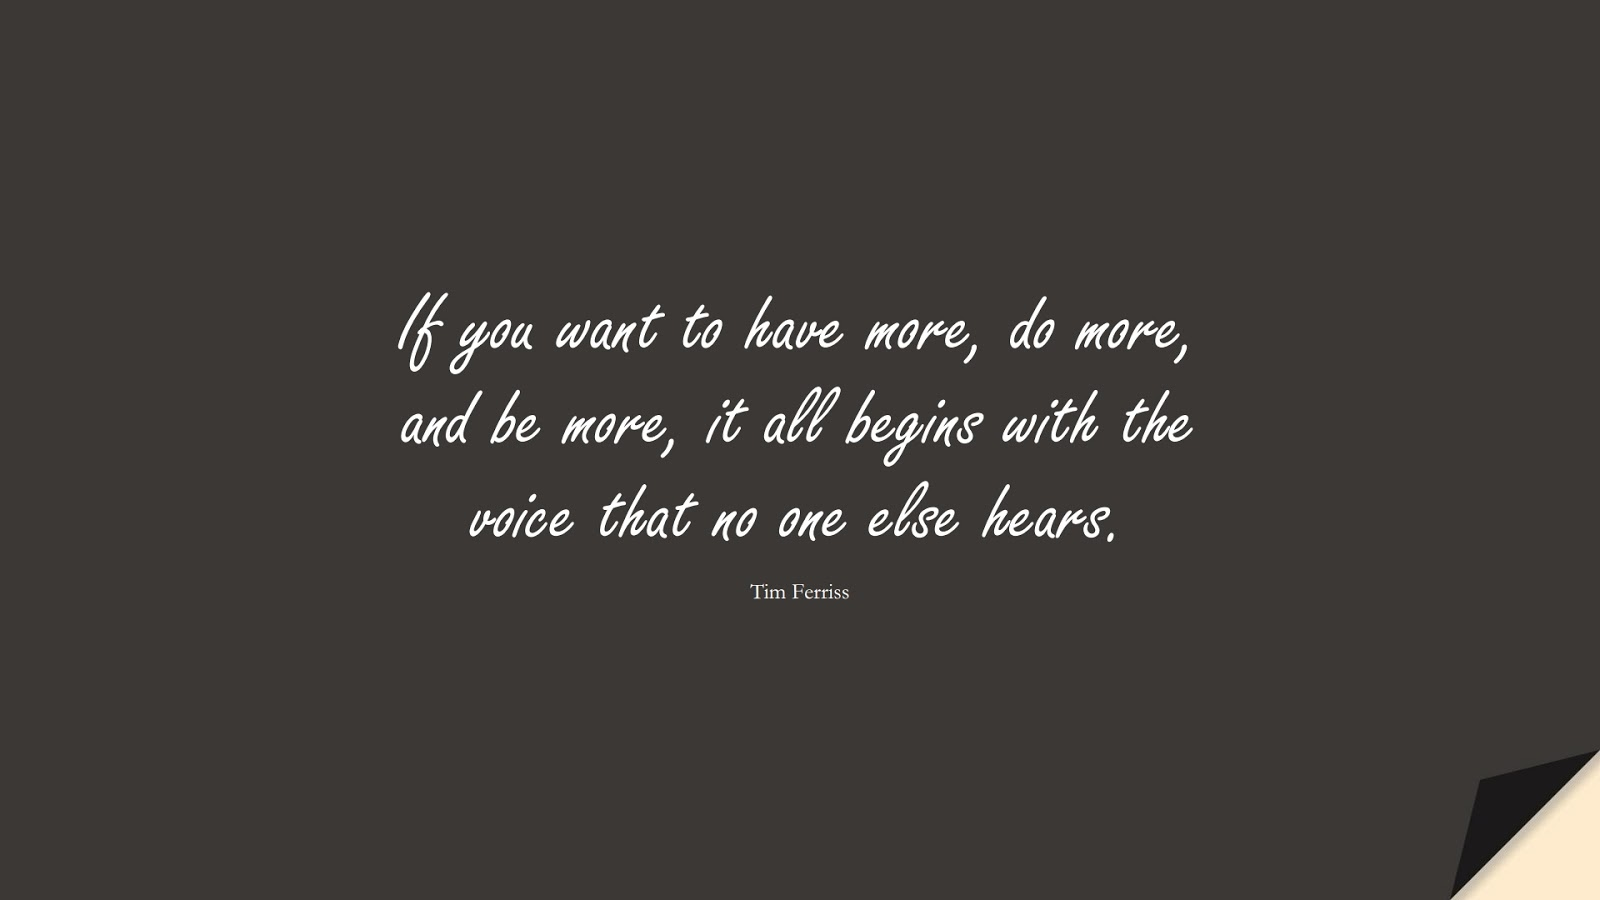 If you want to have more, do more, and be more, it all begins with the voice that no one else hears. (Tim Ferriss);  #TimFerrissQuotes